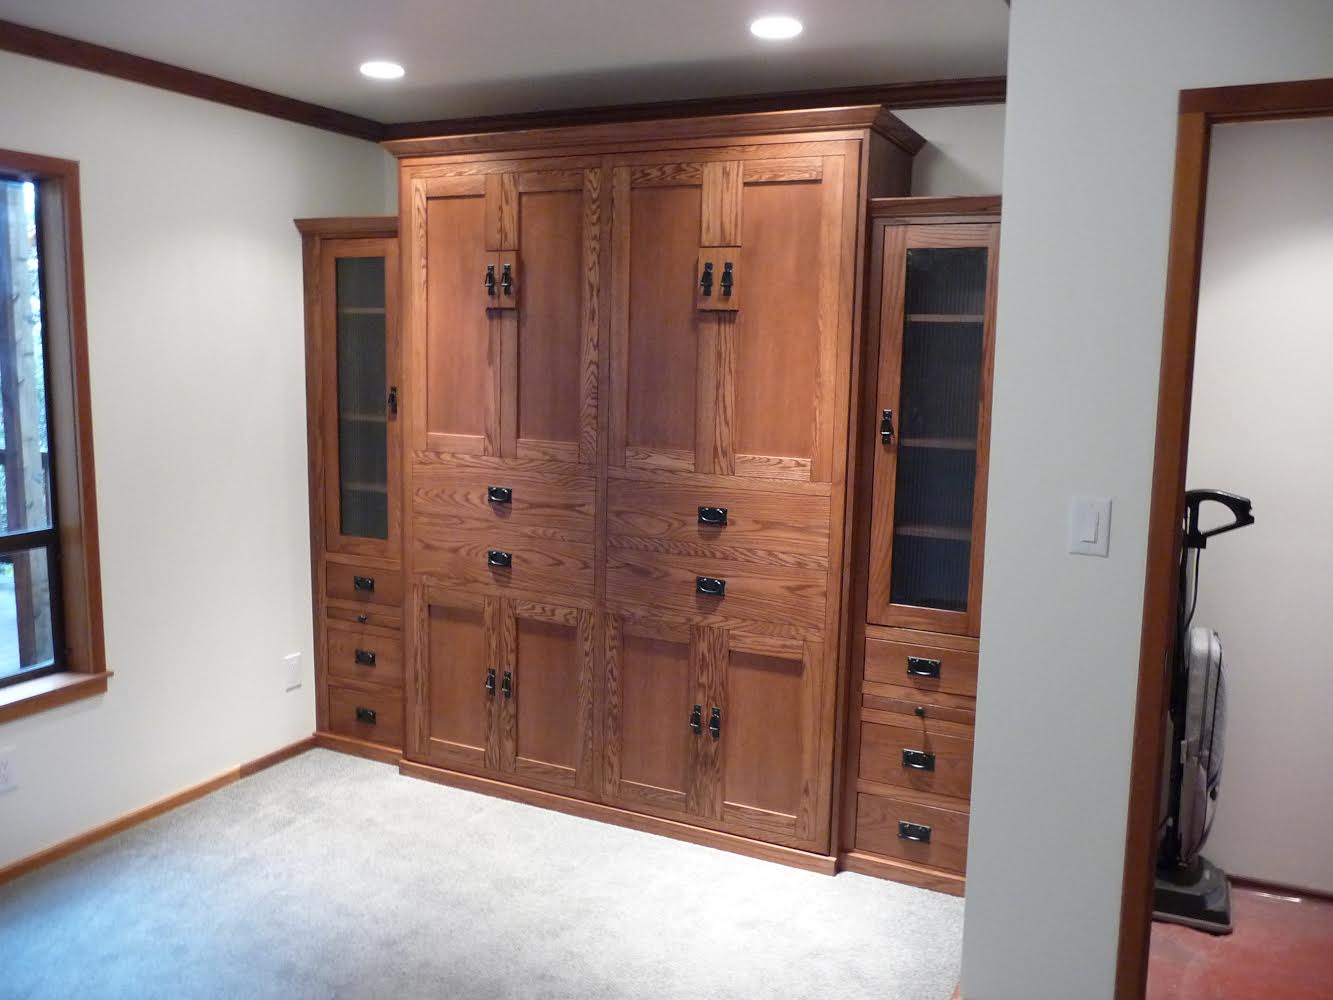 image mission home styles furniture. American Craftsmam Style Murphy Bed Image Mission Home Styles Furniture I